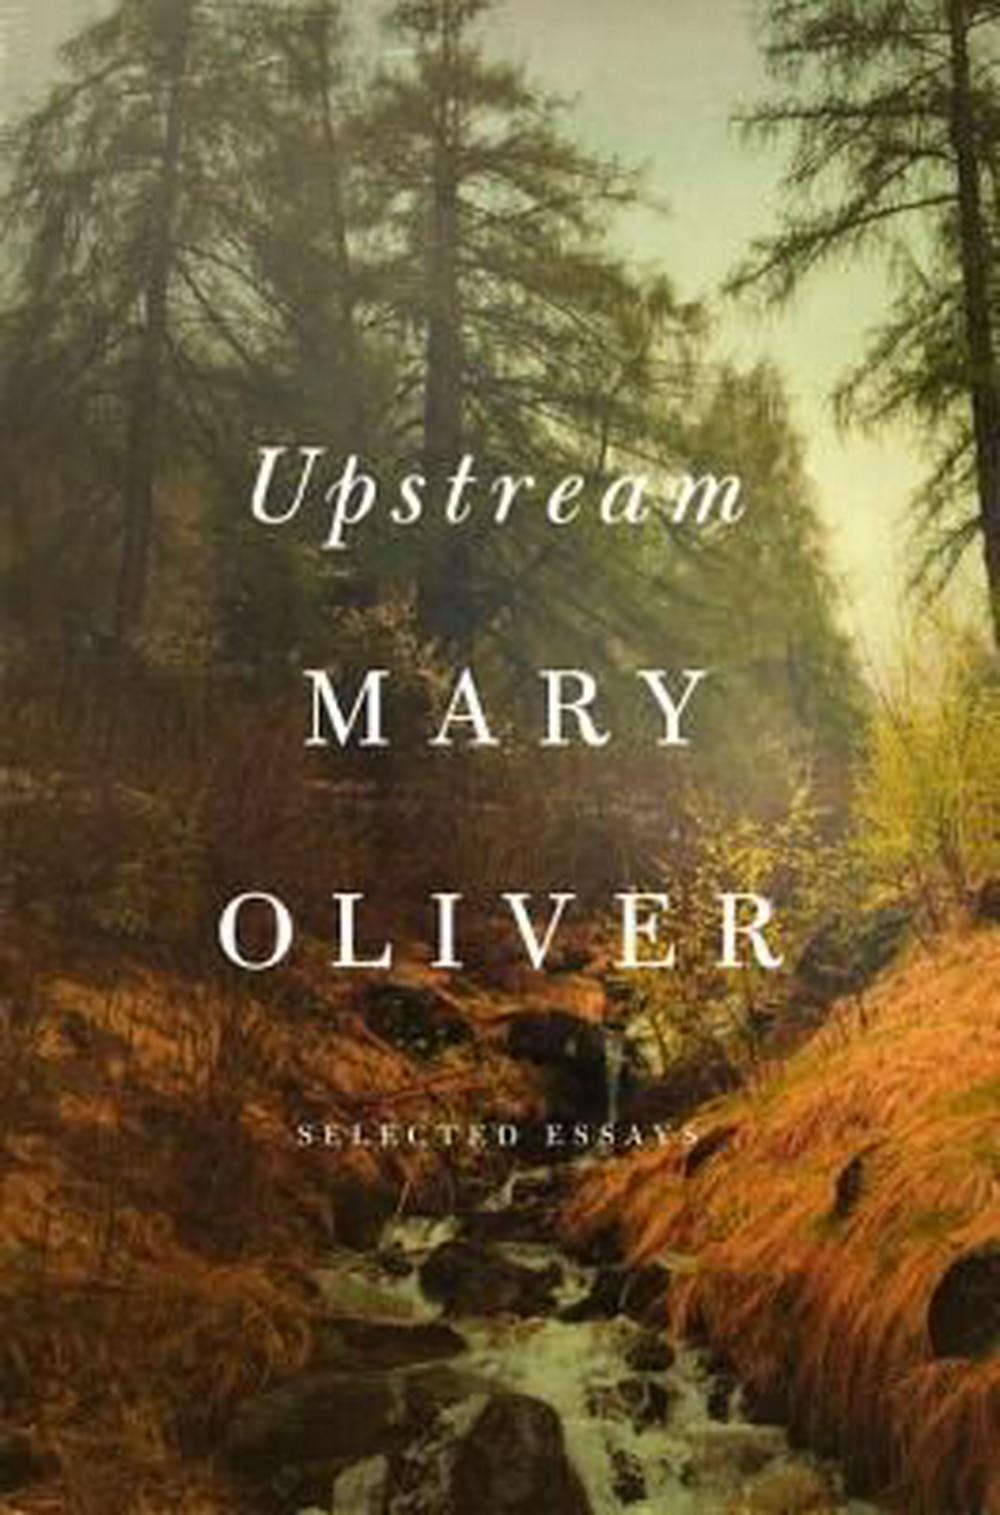 Upstream by Mary Oliver, ISBN: 9781594206702